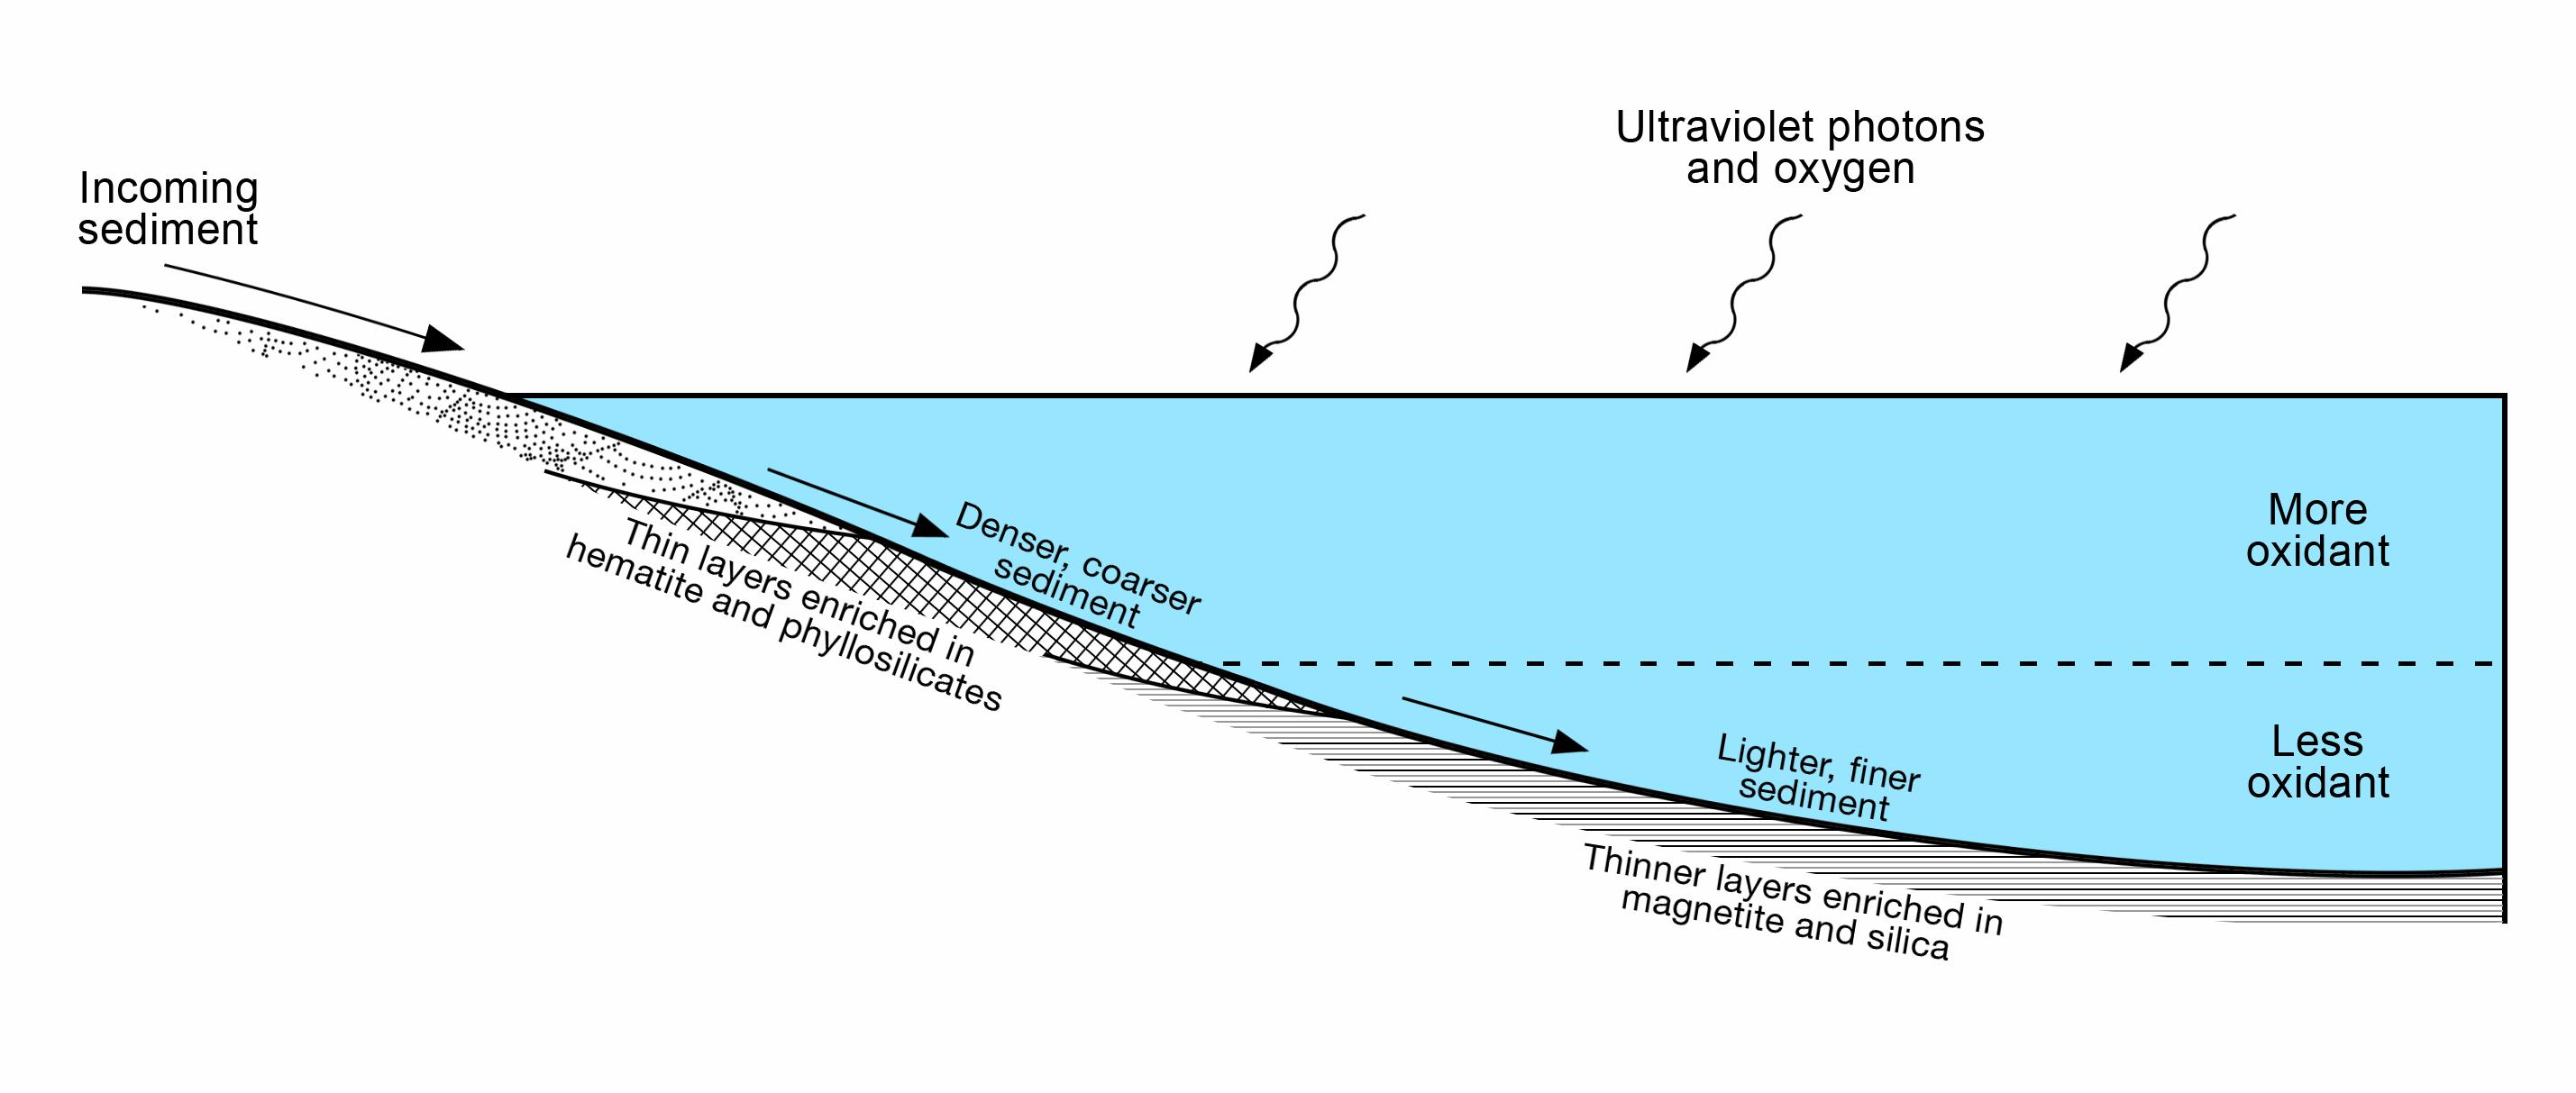 Parts Of A Plot Diagram: Space Images | Diagram of Lake Stratification on Mars,Chart